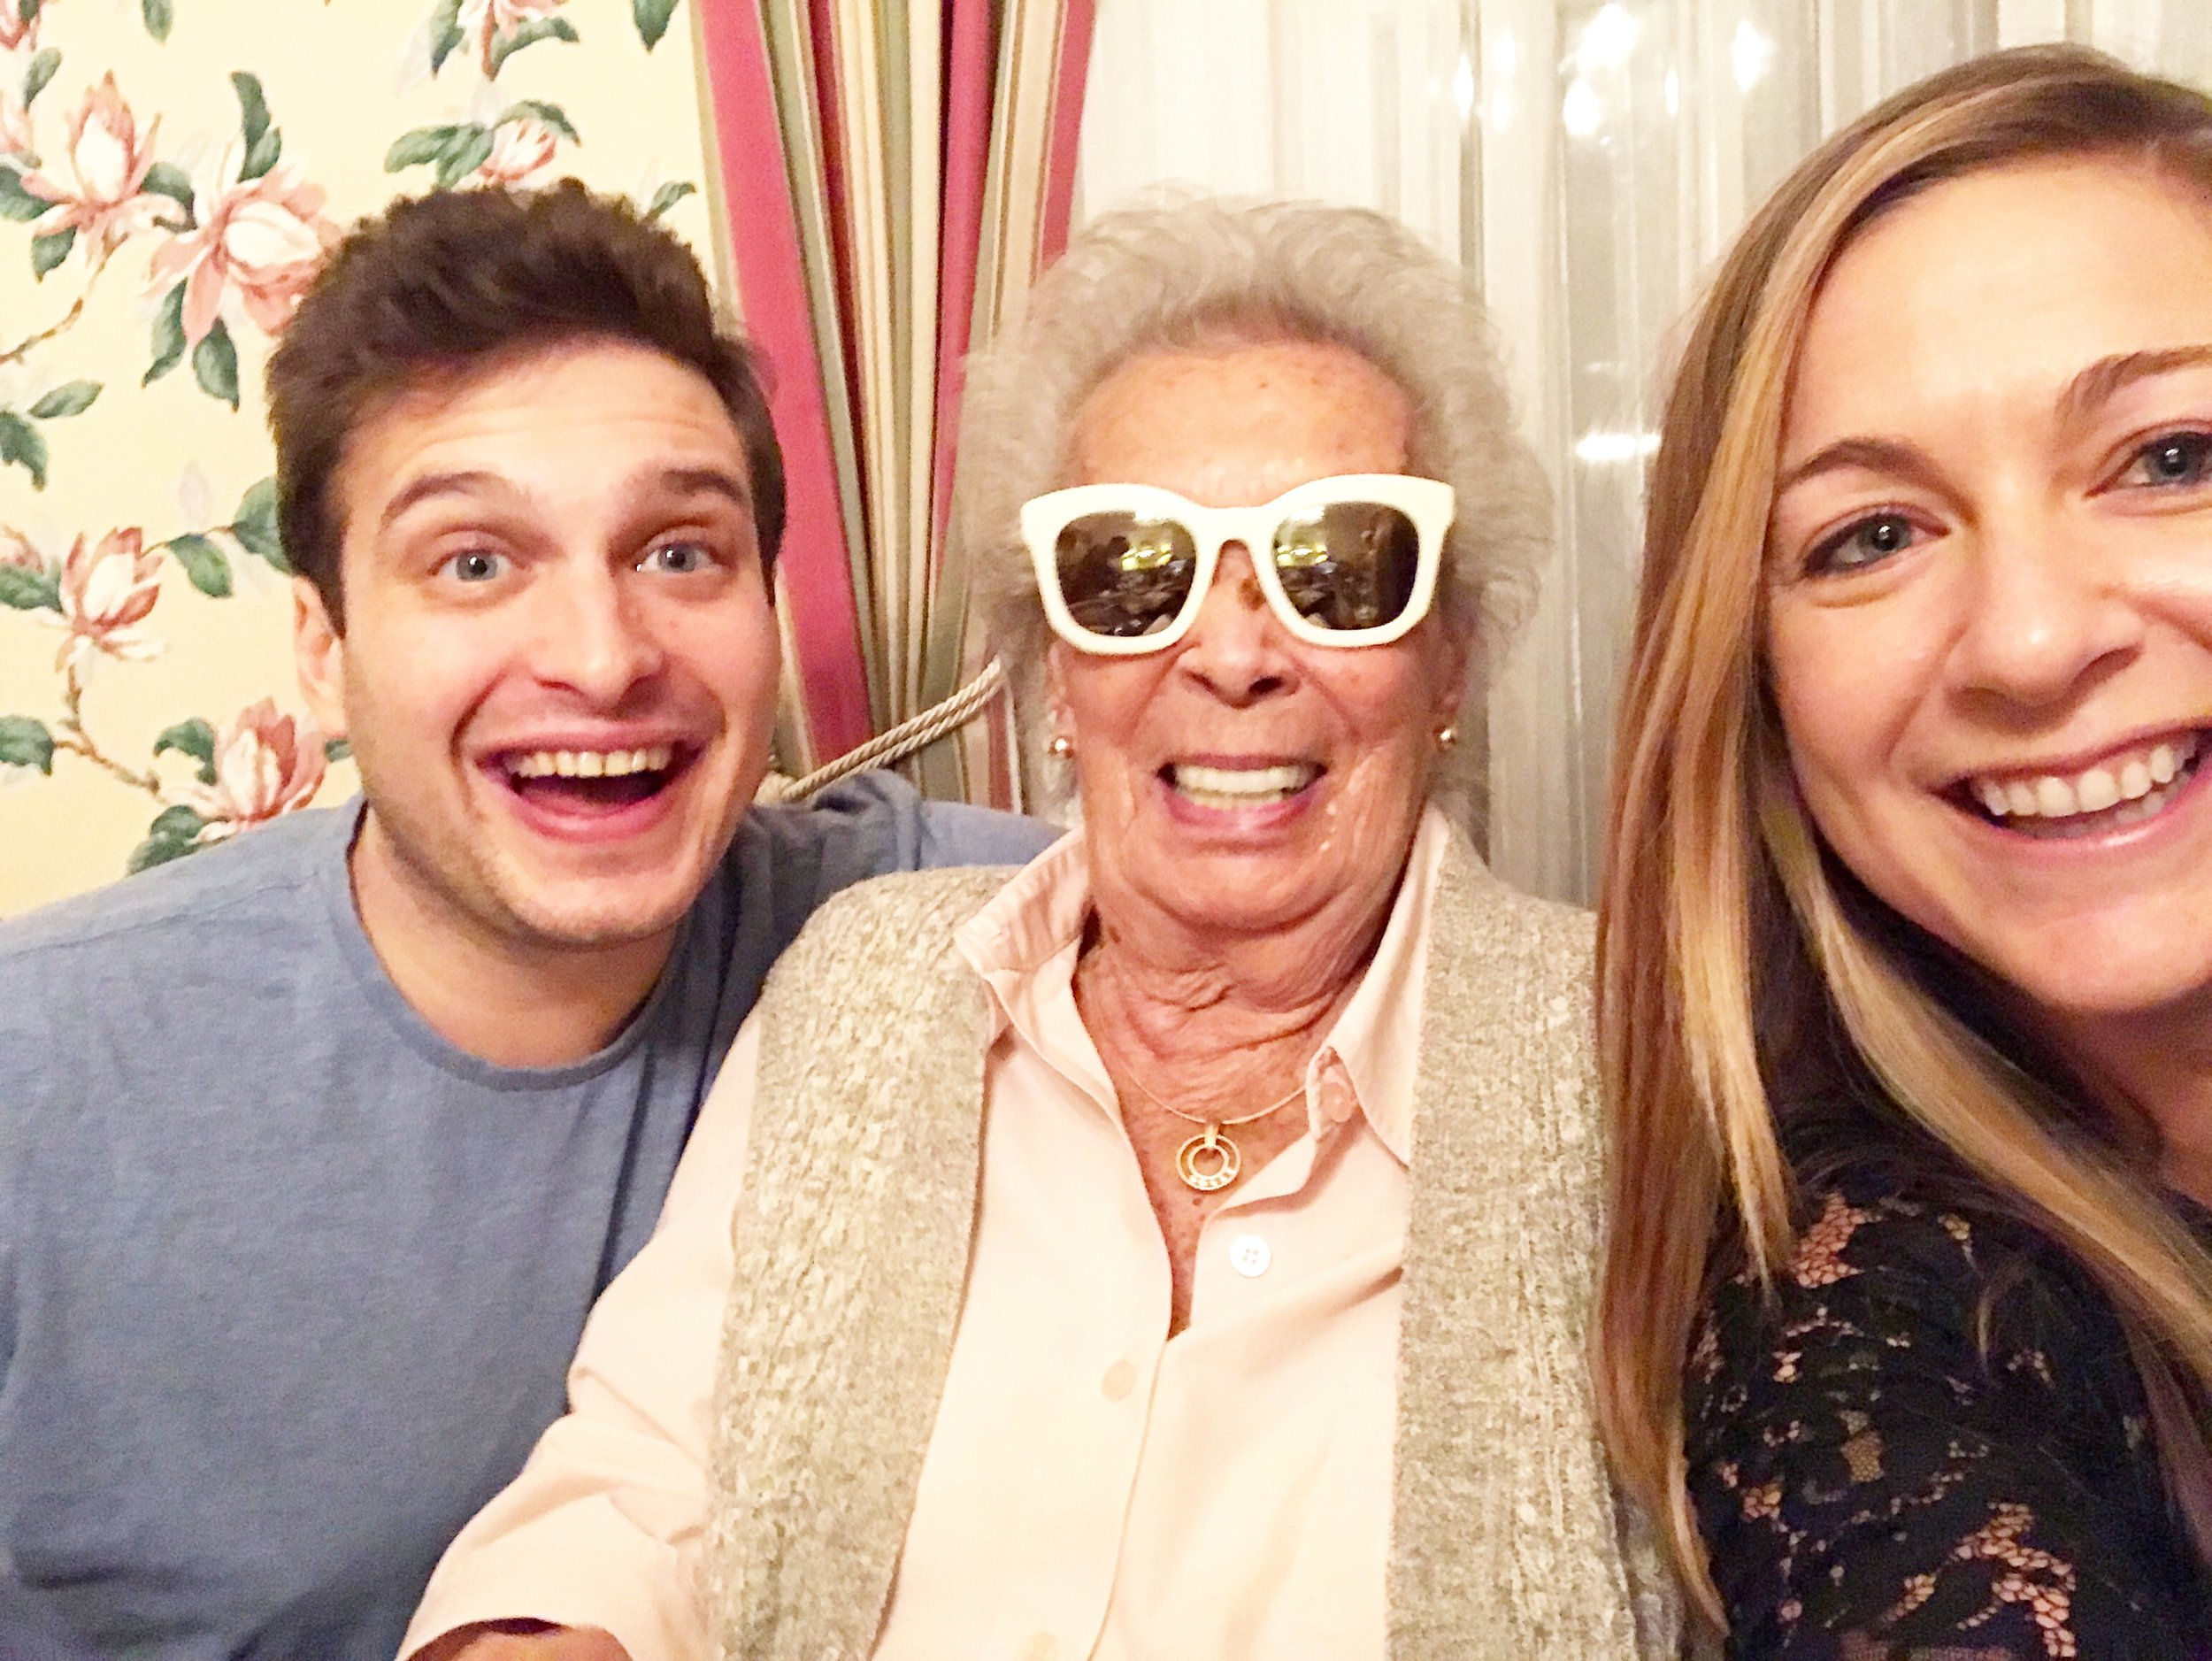 Lindsey with her grandma and cousin.